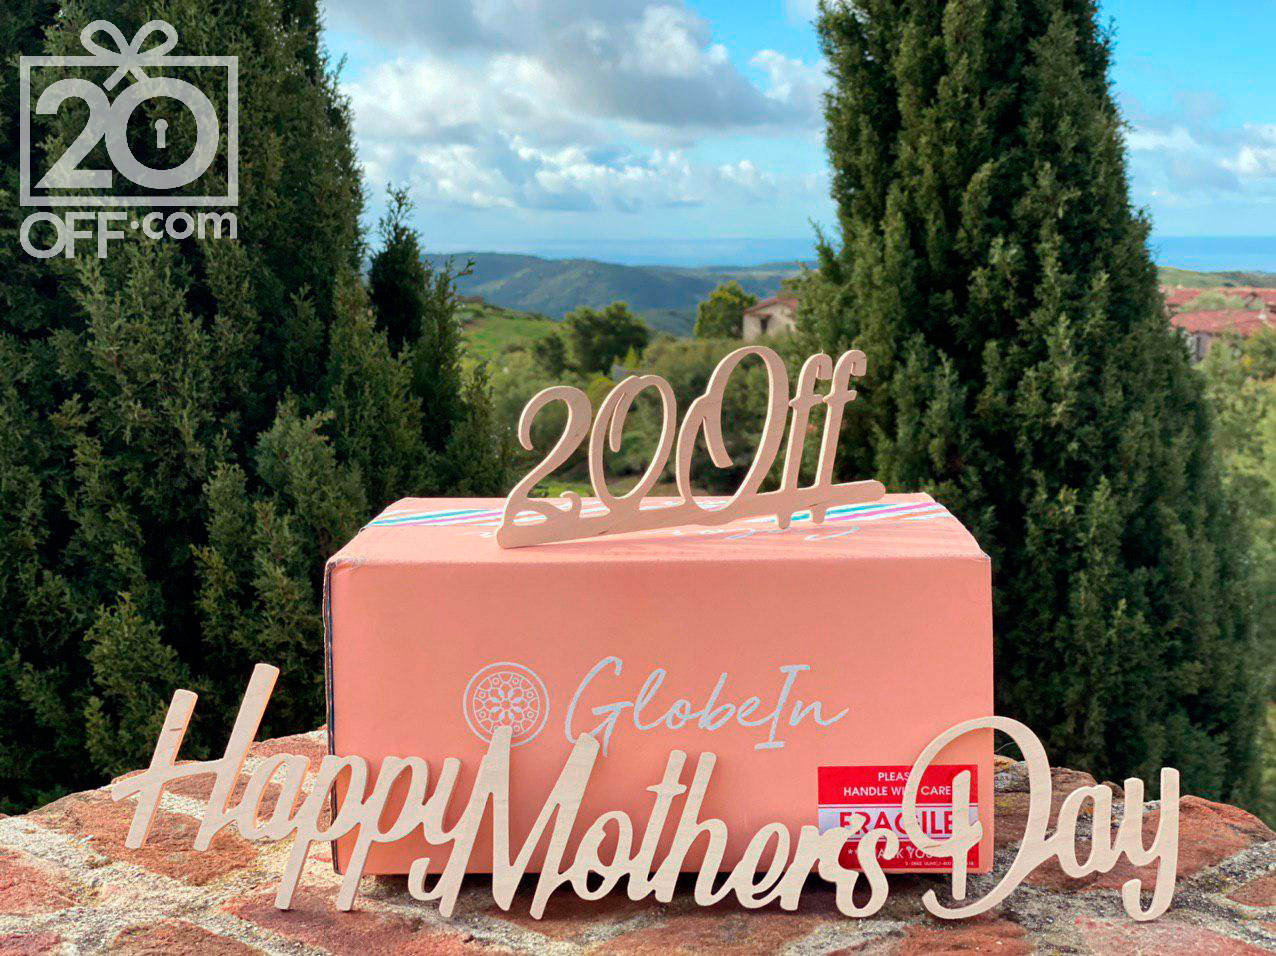 GlobeIn Mother's Day Promo 20off